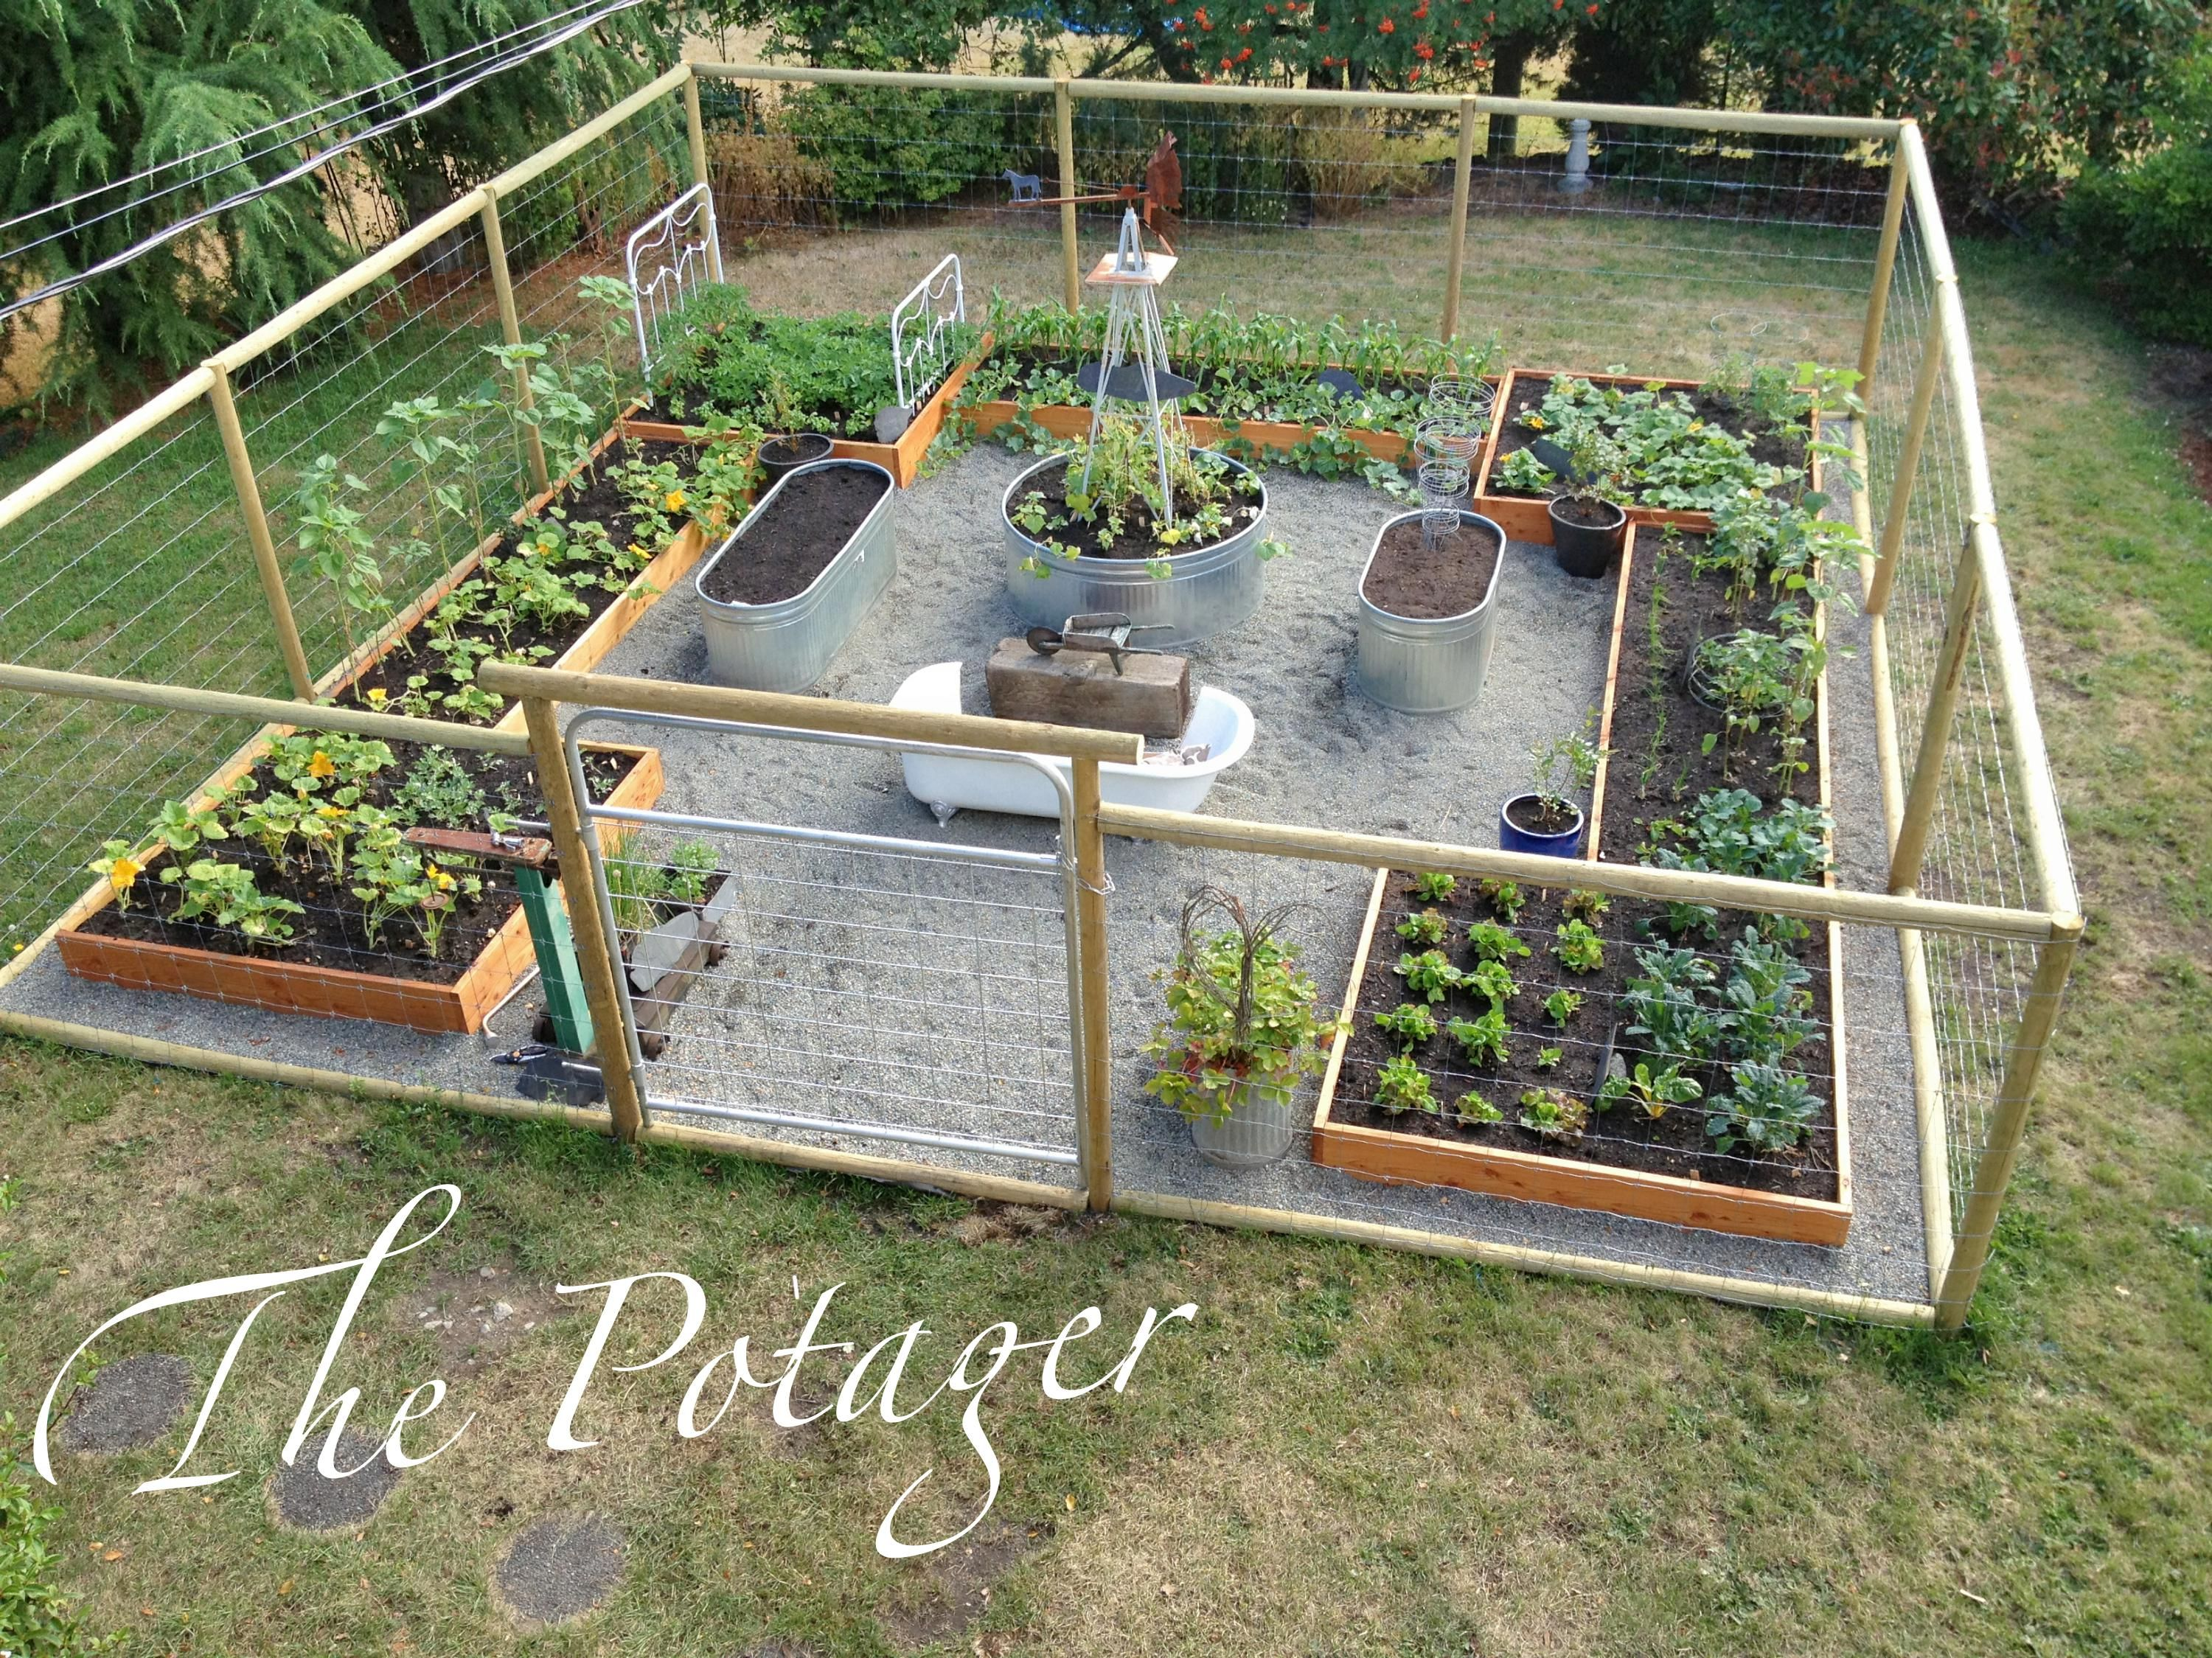 Vegetable garden deer fence ideas - House And Bloom From Grass To Garden Presenting The Potager